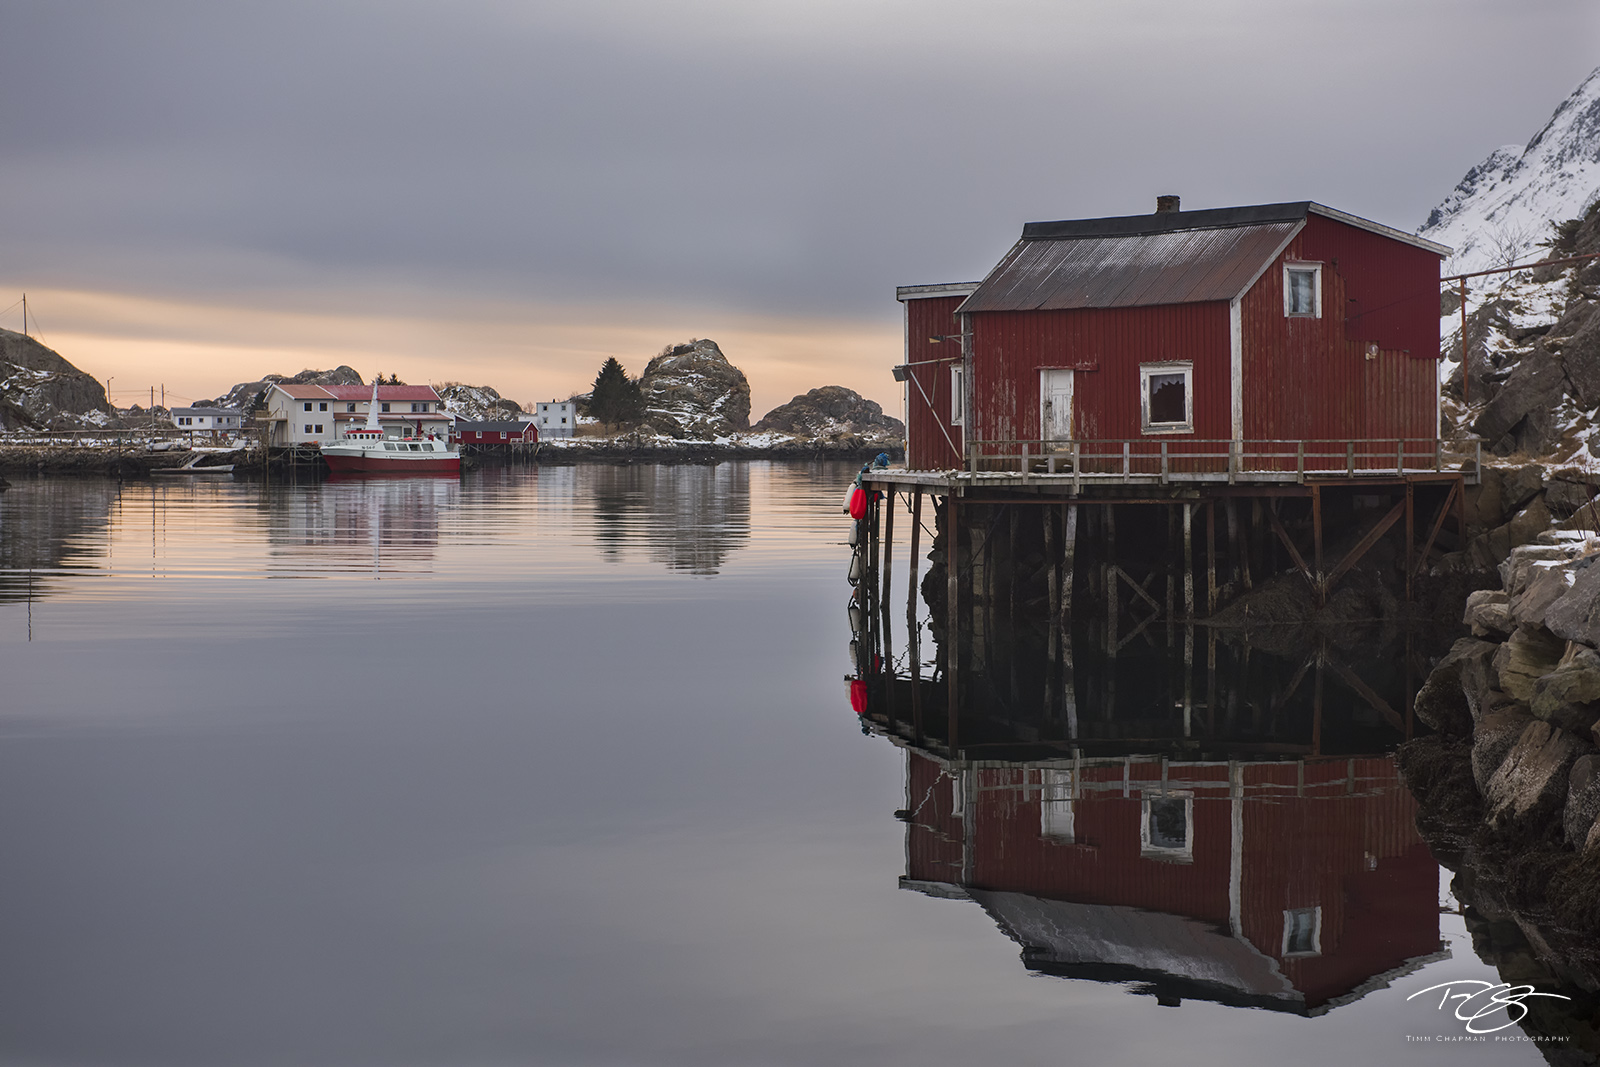 norway, gallery, sund, sheltered cove, sunrise, quiet, reflective, reflection, peaceful, serene, fishing village, Moskenes, Reine, rorbu, rorbuer, photo